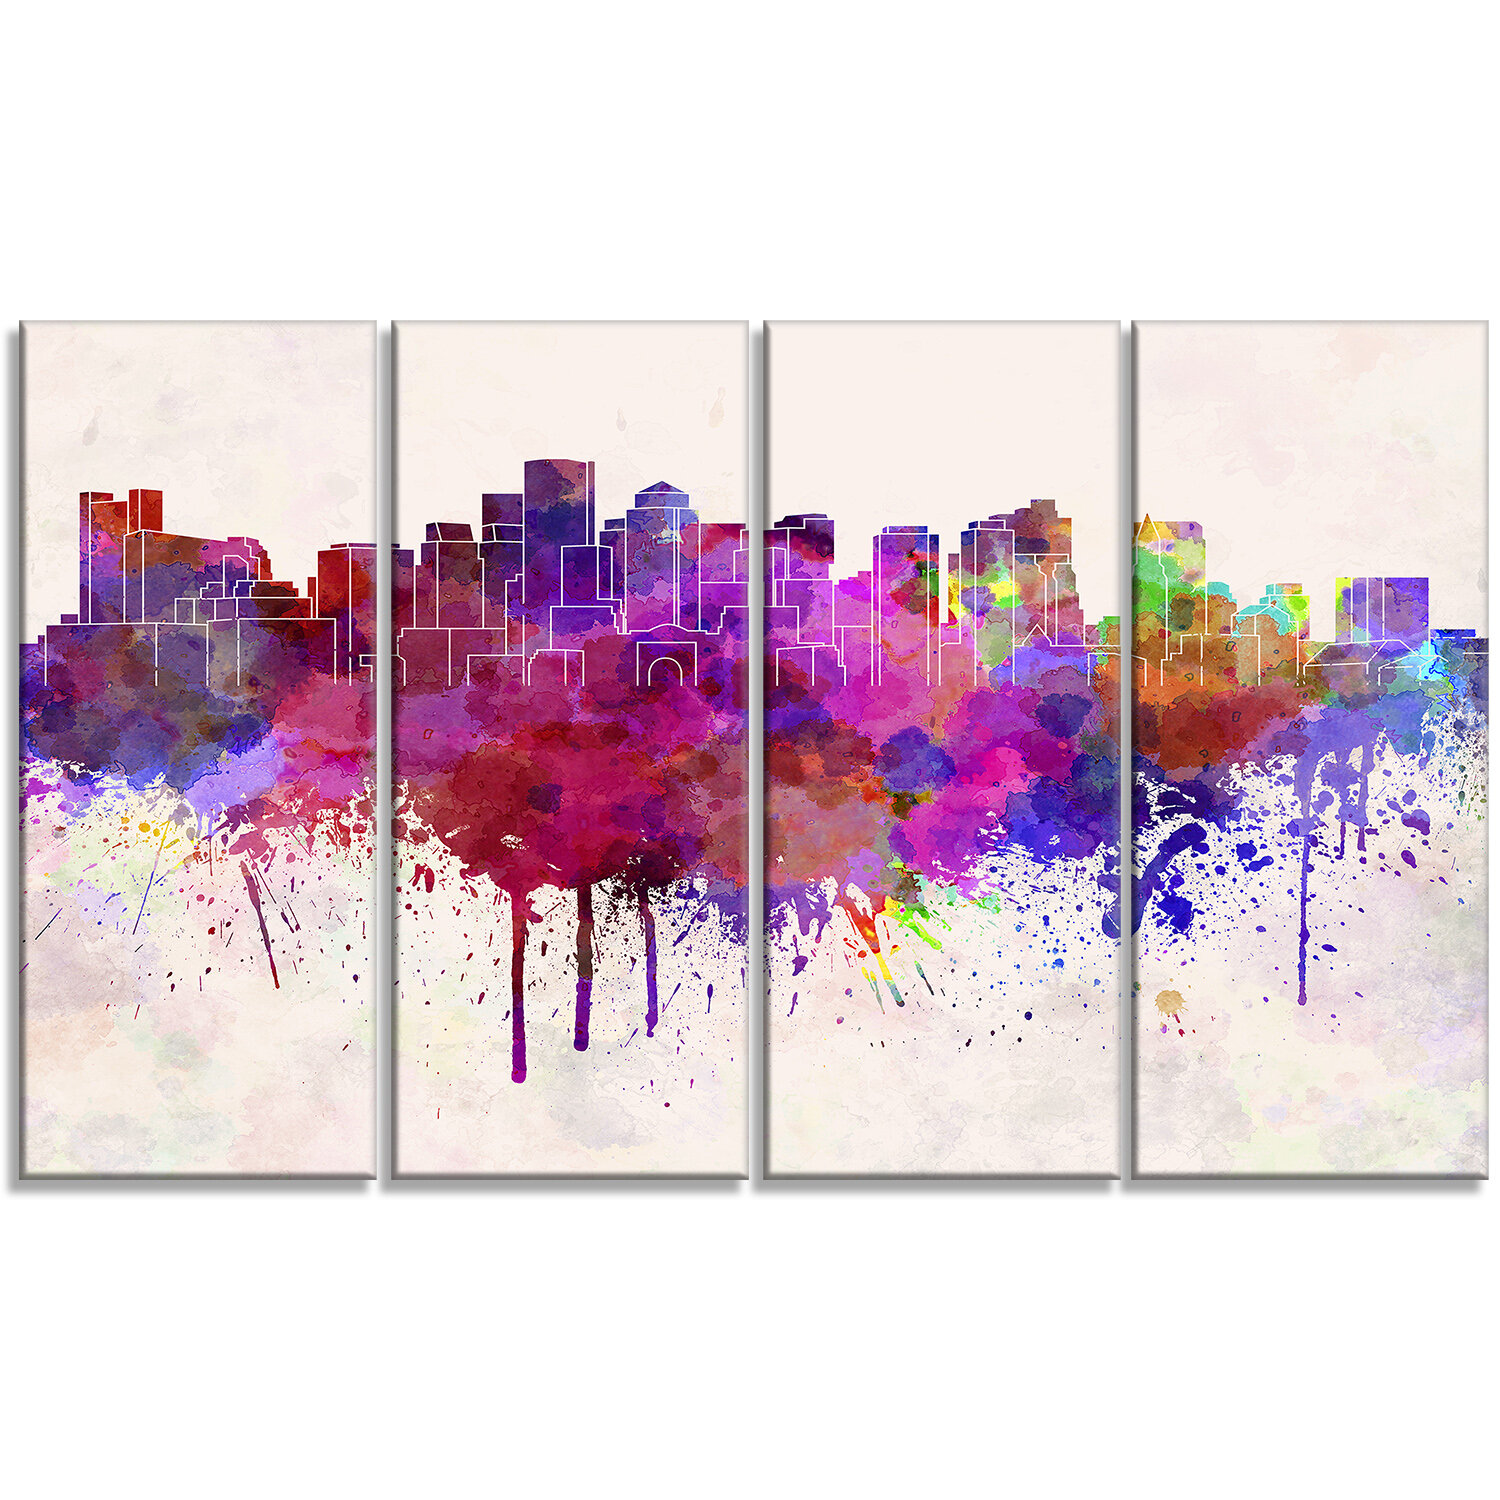 Designart Boston Skyline Cityscape 4 Piece Painting Print On Wrapped Canvas Set Wayfair